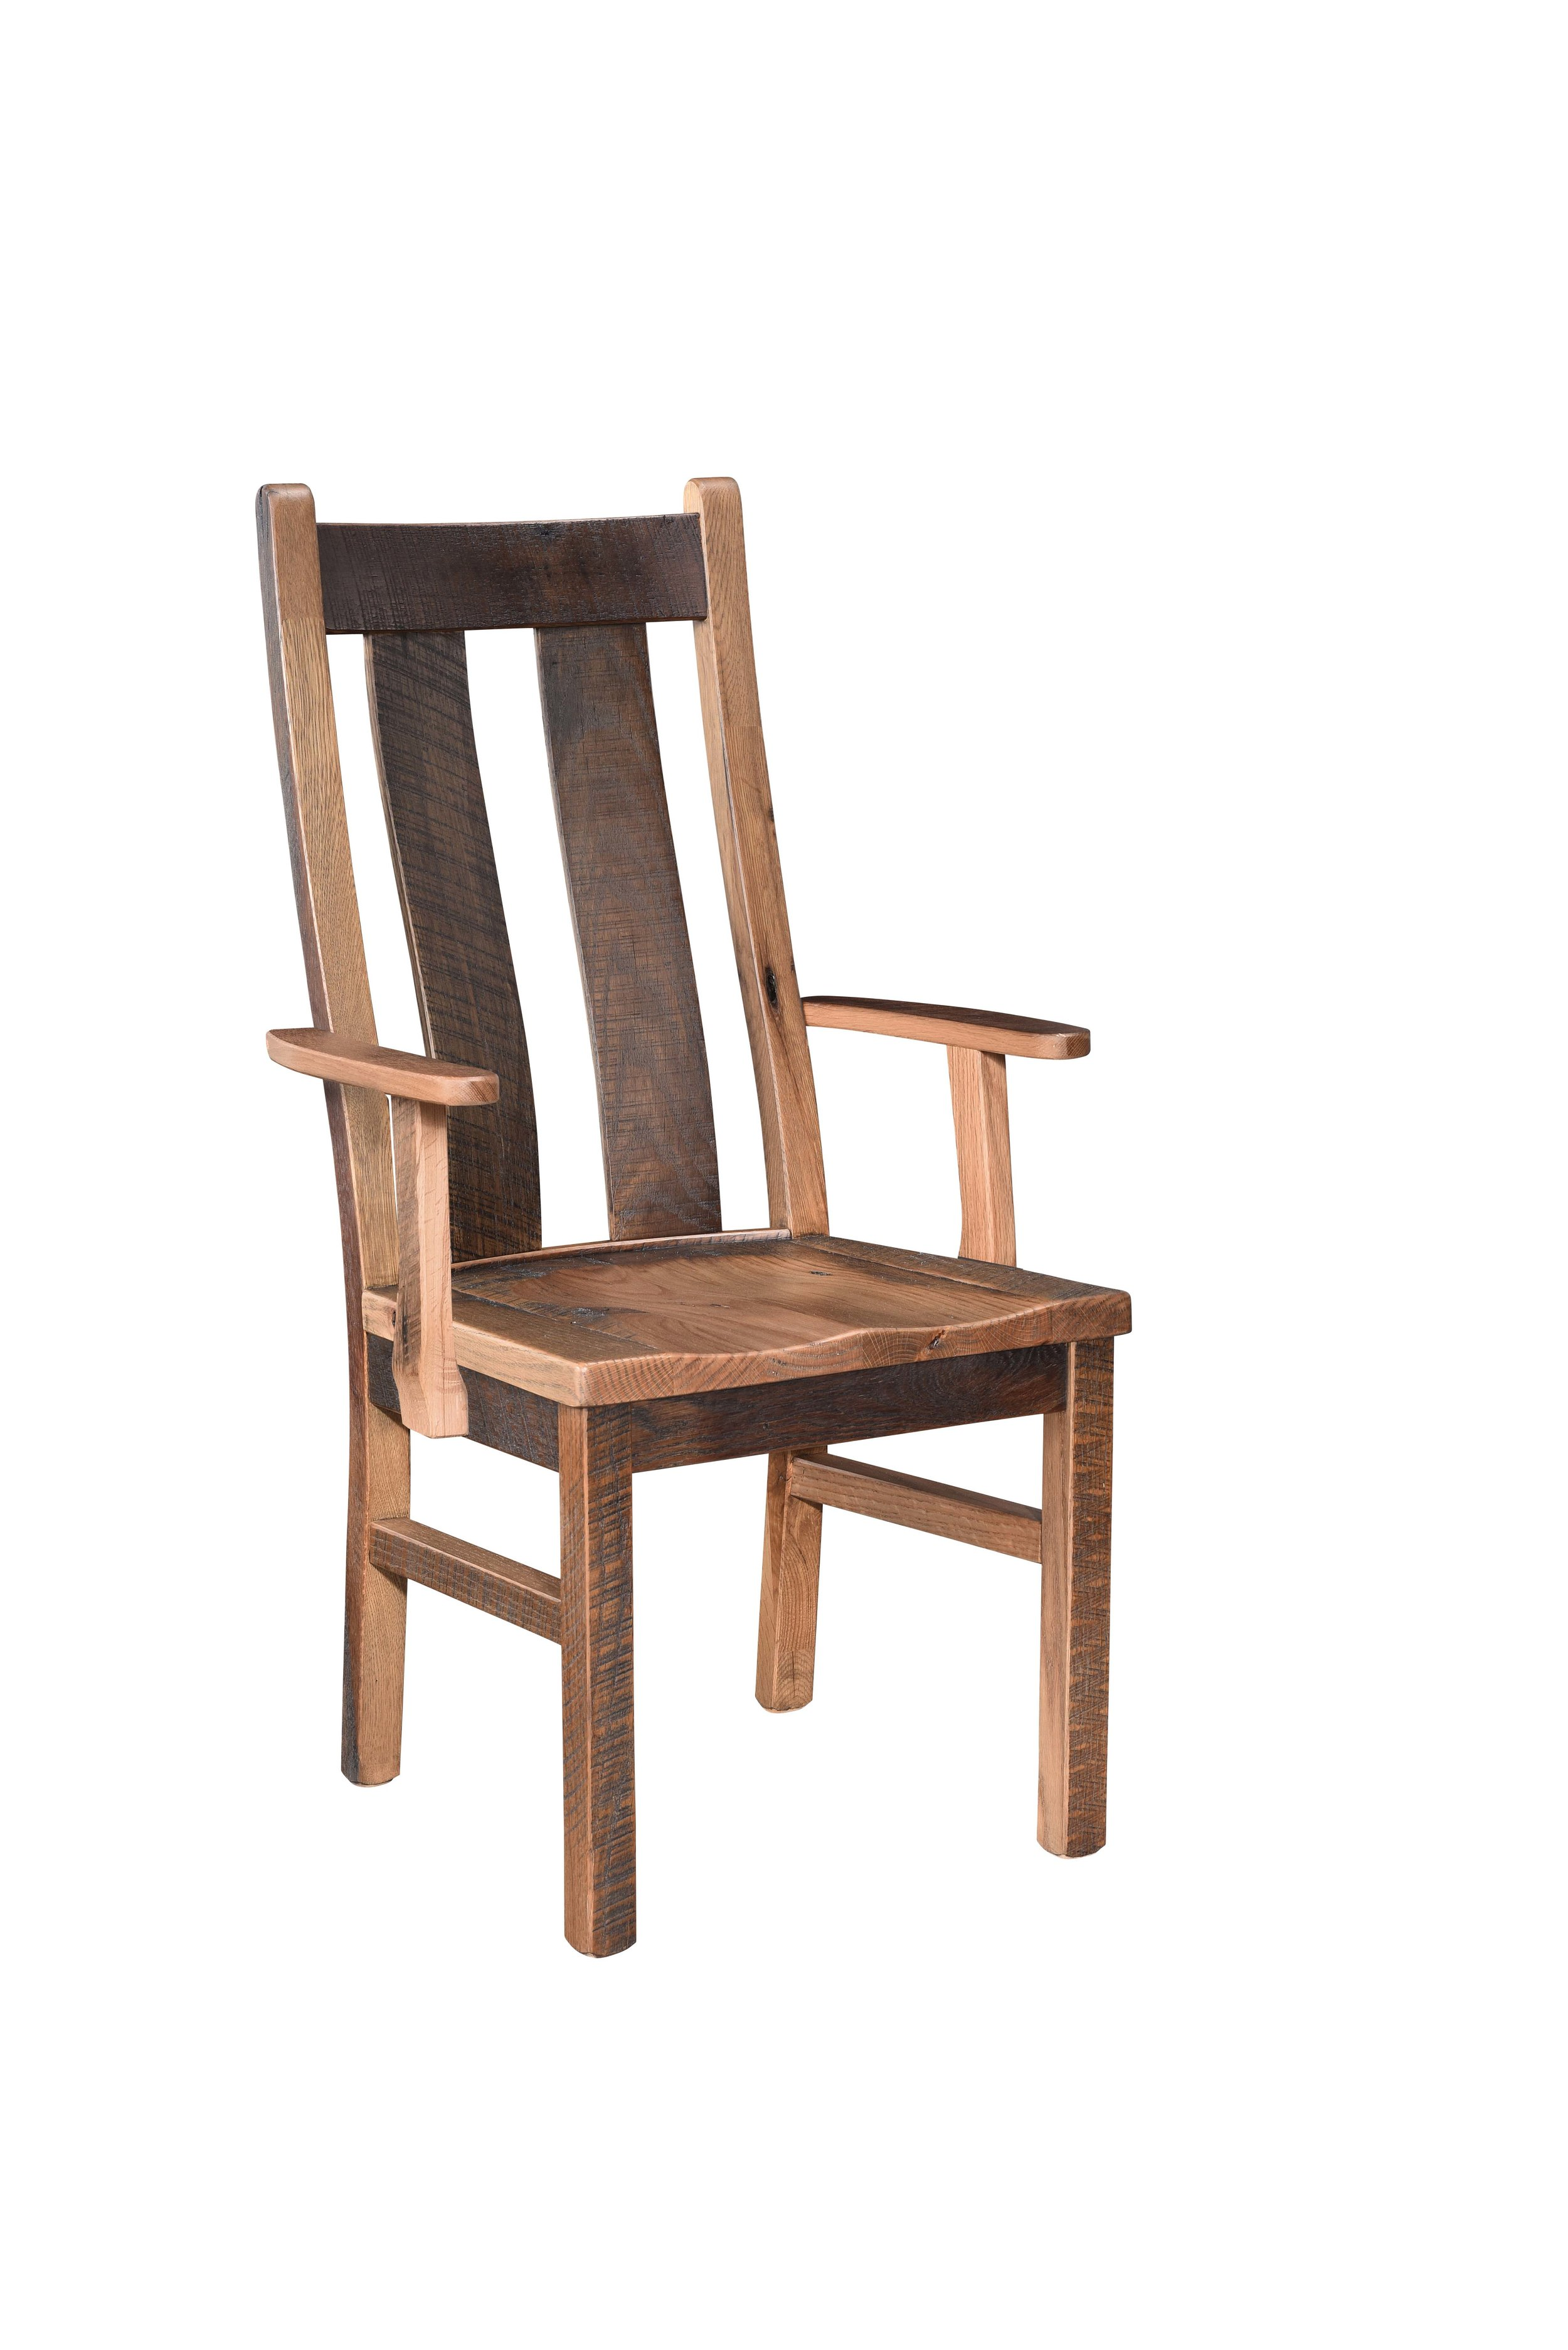 237-BAC Bristol Arm Chair - Sept2017Cat-p67 Bottom.jpg